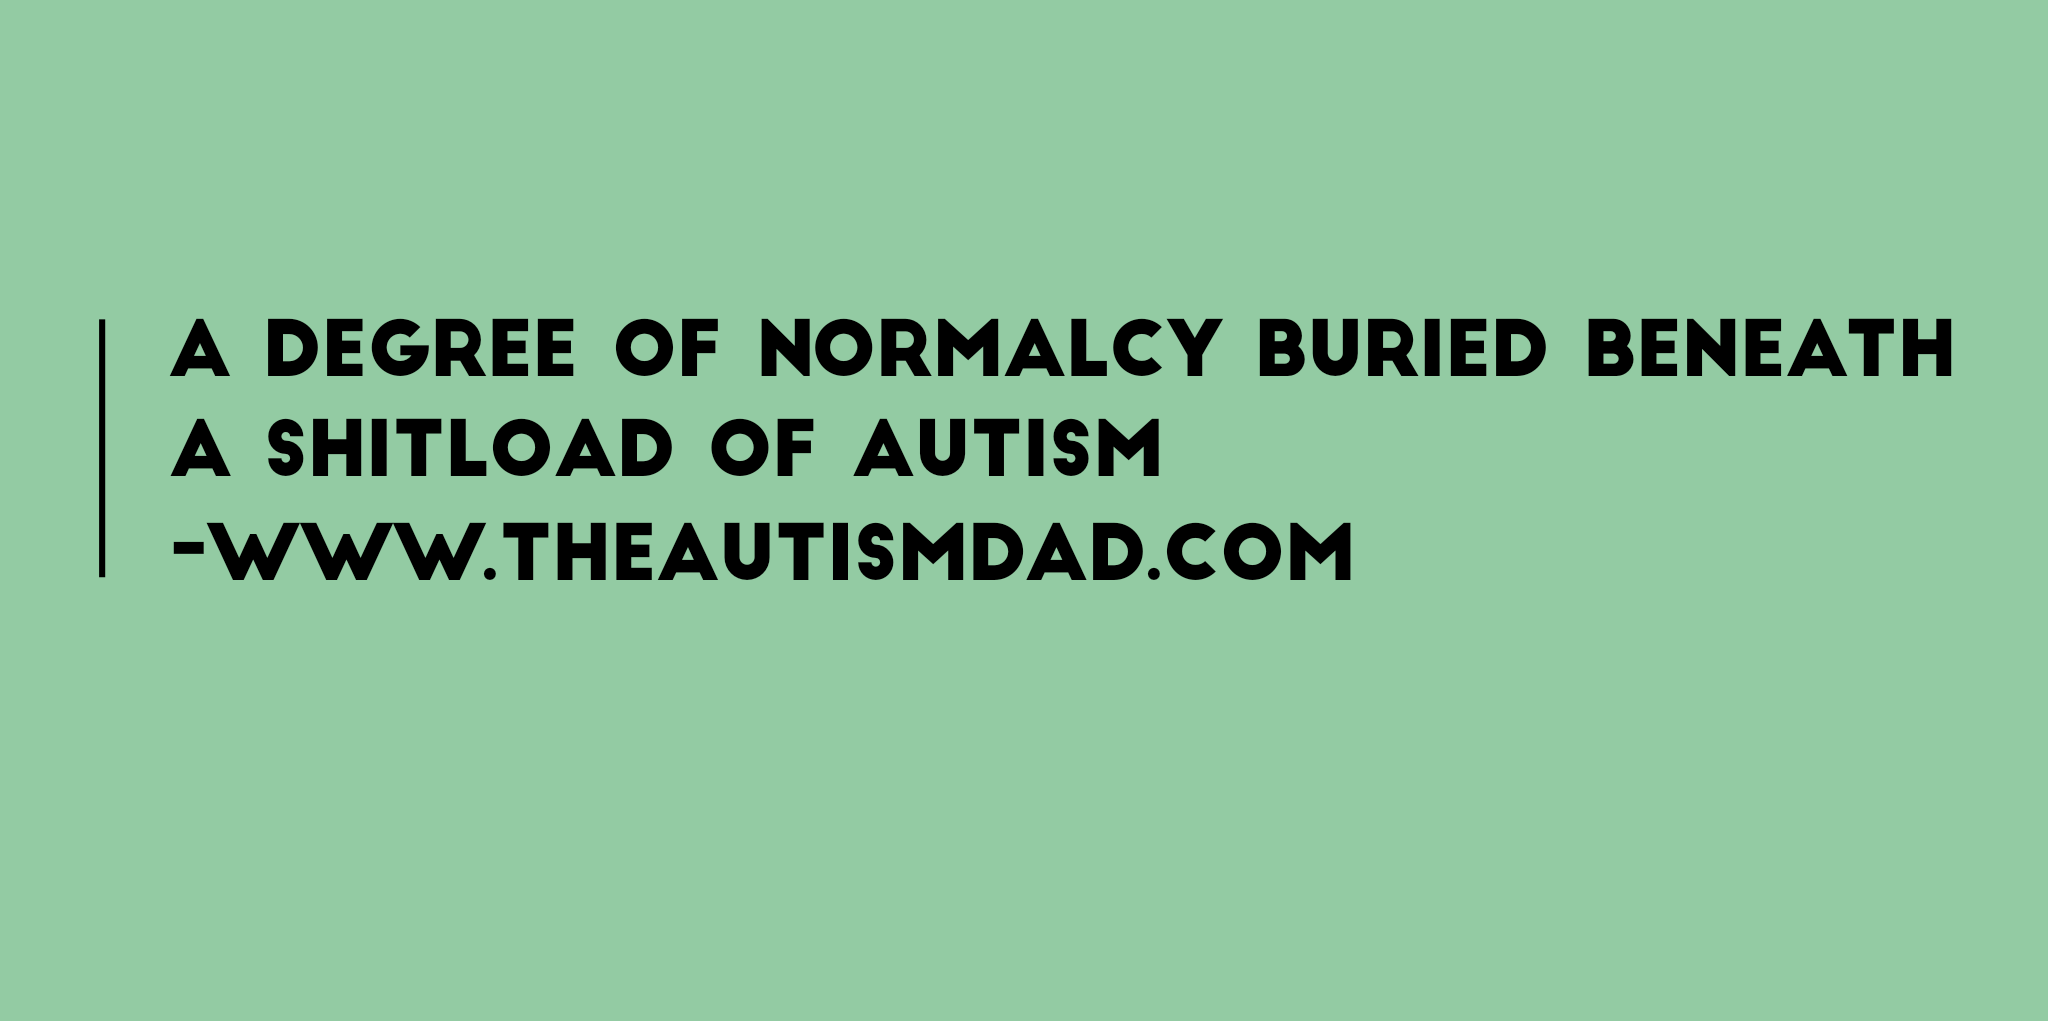 A degree of normalcy buried beneath a shitload of #Autism